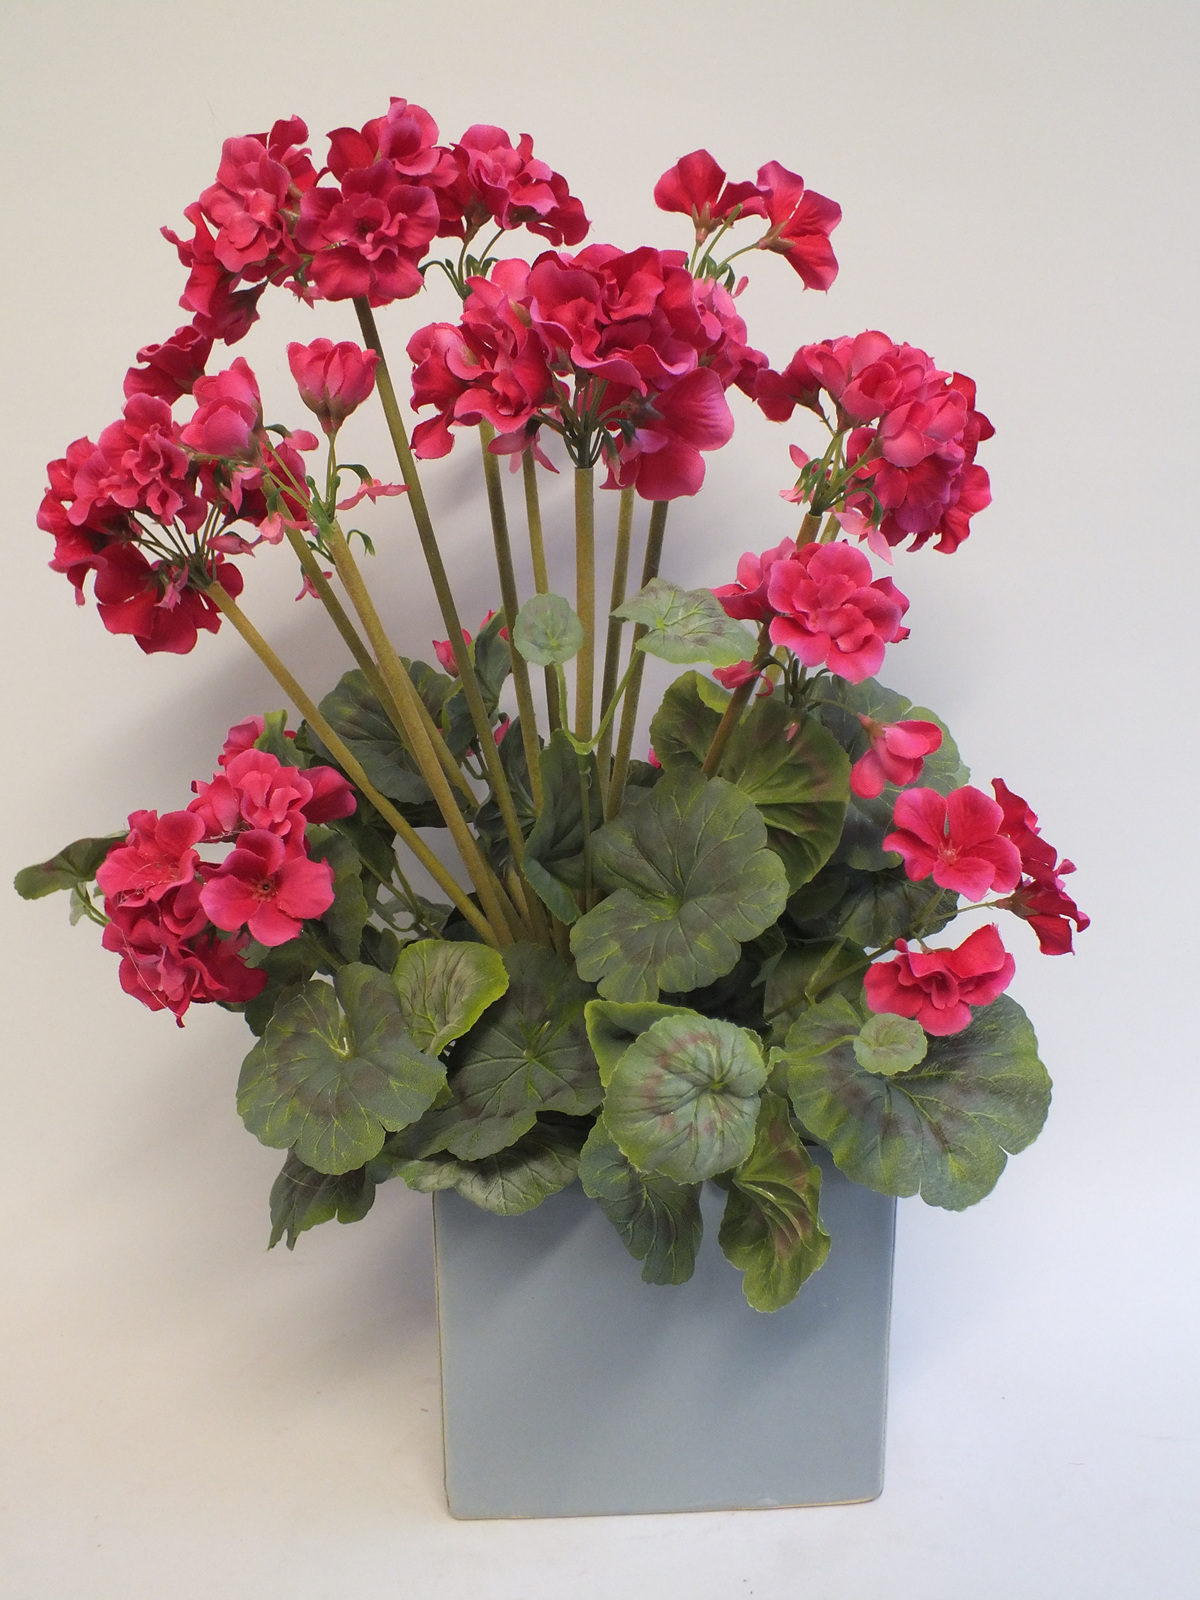 Geranium Potted 2101 3 Grannys Favourite The Silk Flower Company